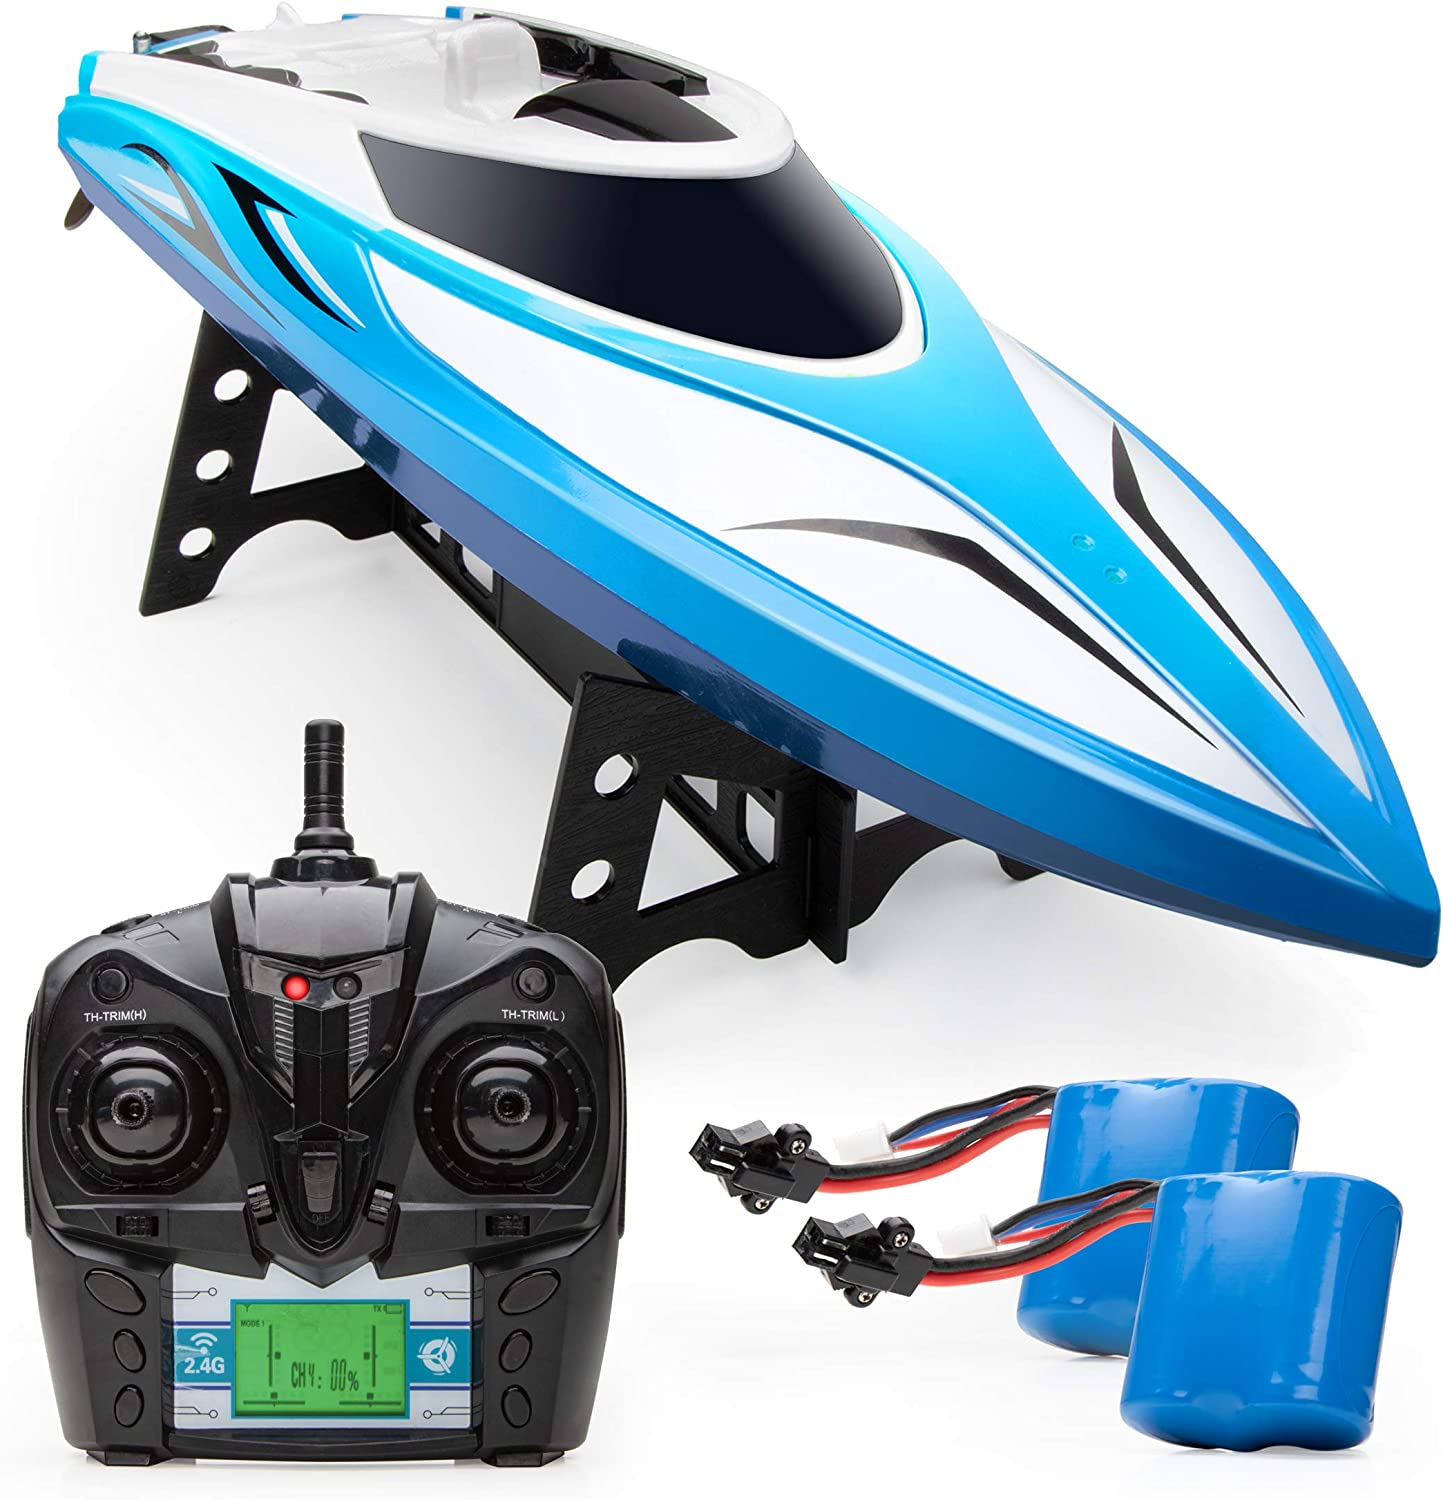 Force1 Velocity Rc Boat H102 Remote Control Boats For Pools And Lakes 20 Mph High Speed Boat Toys Blue